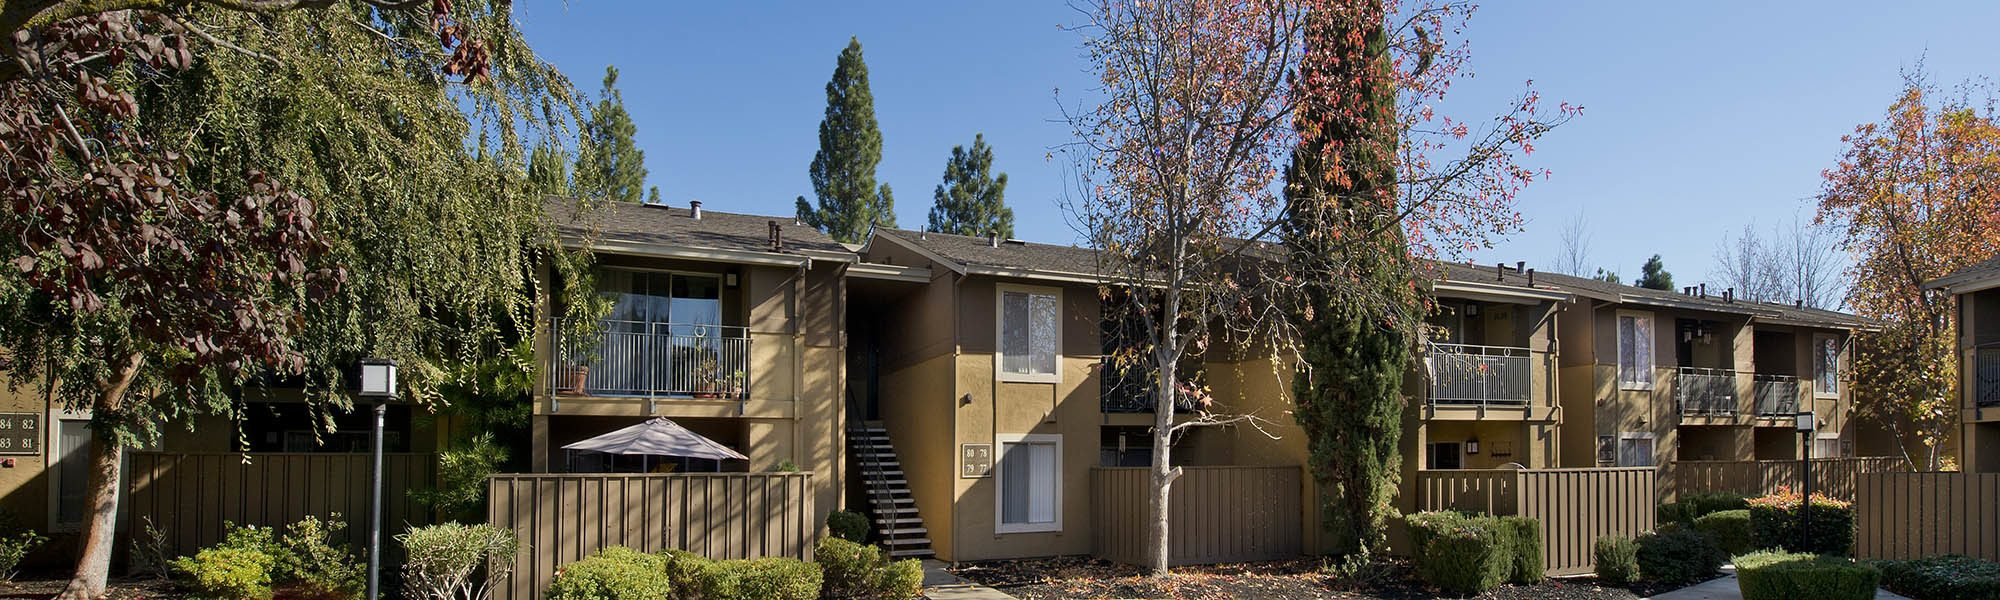 View photos of our affordable property at Valley Ridge Apartment Homes in Martinez, CA